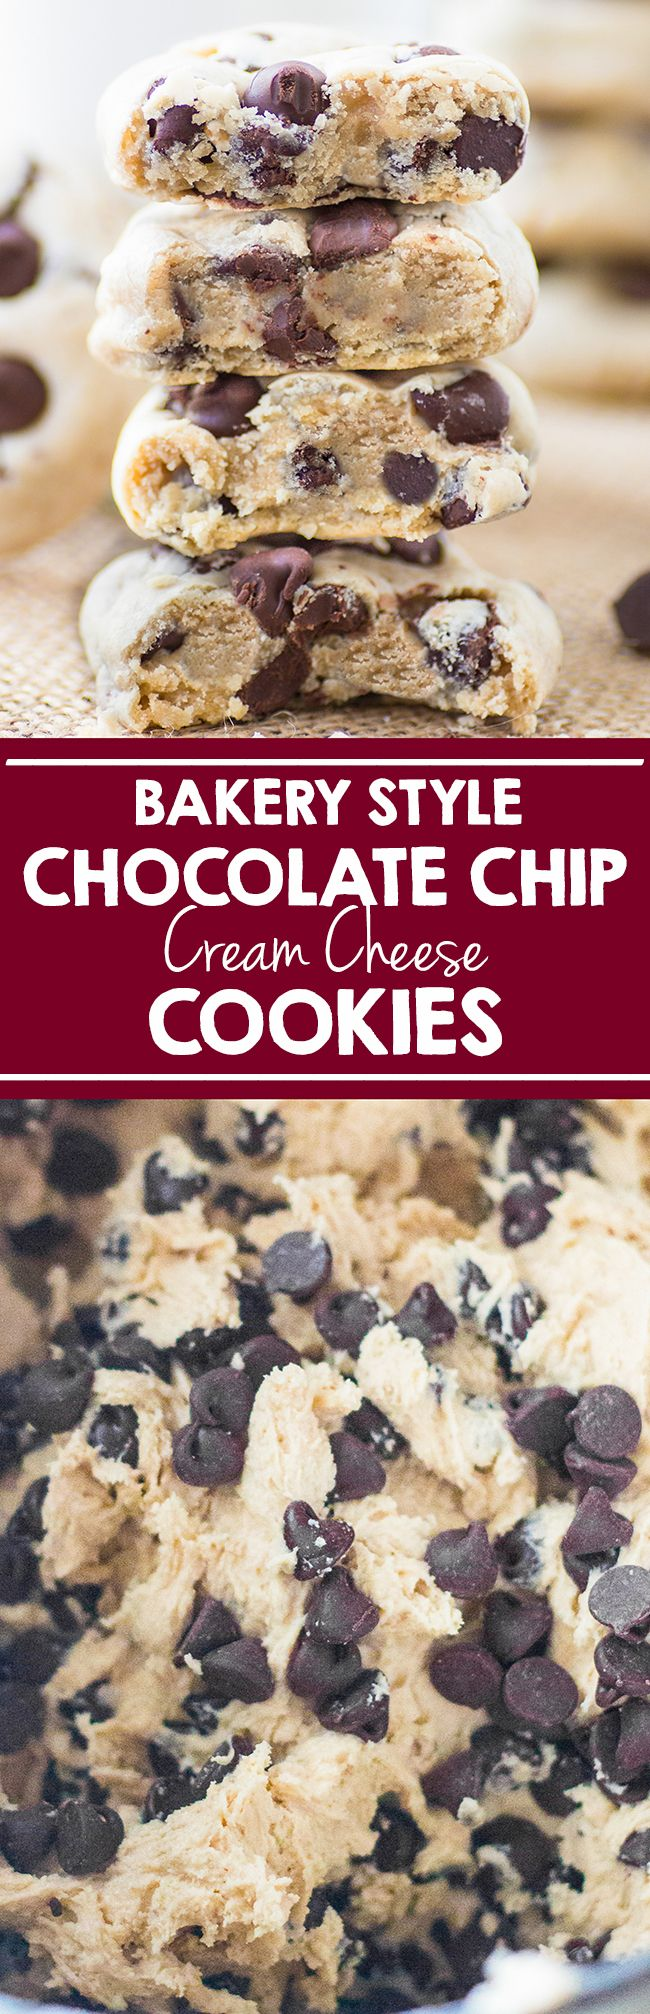 The most delicious bakery style soft and chewy Chocolate Chip Cookies with a secret ingredient that will make all the difference! #food #cookie #chocolate #christmas